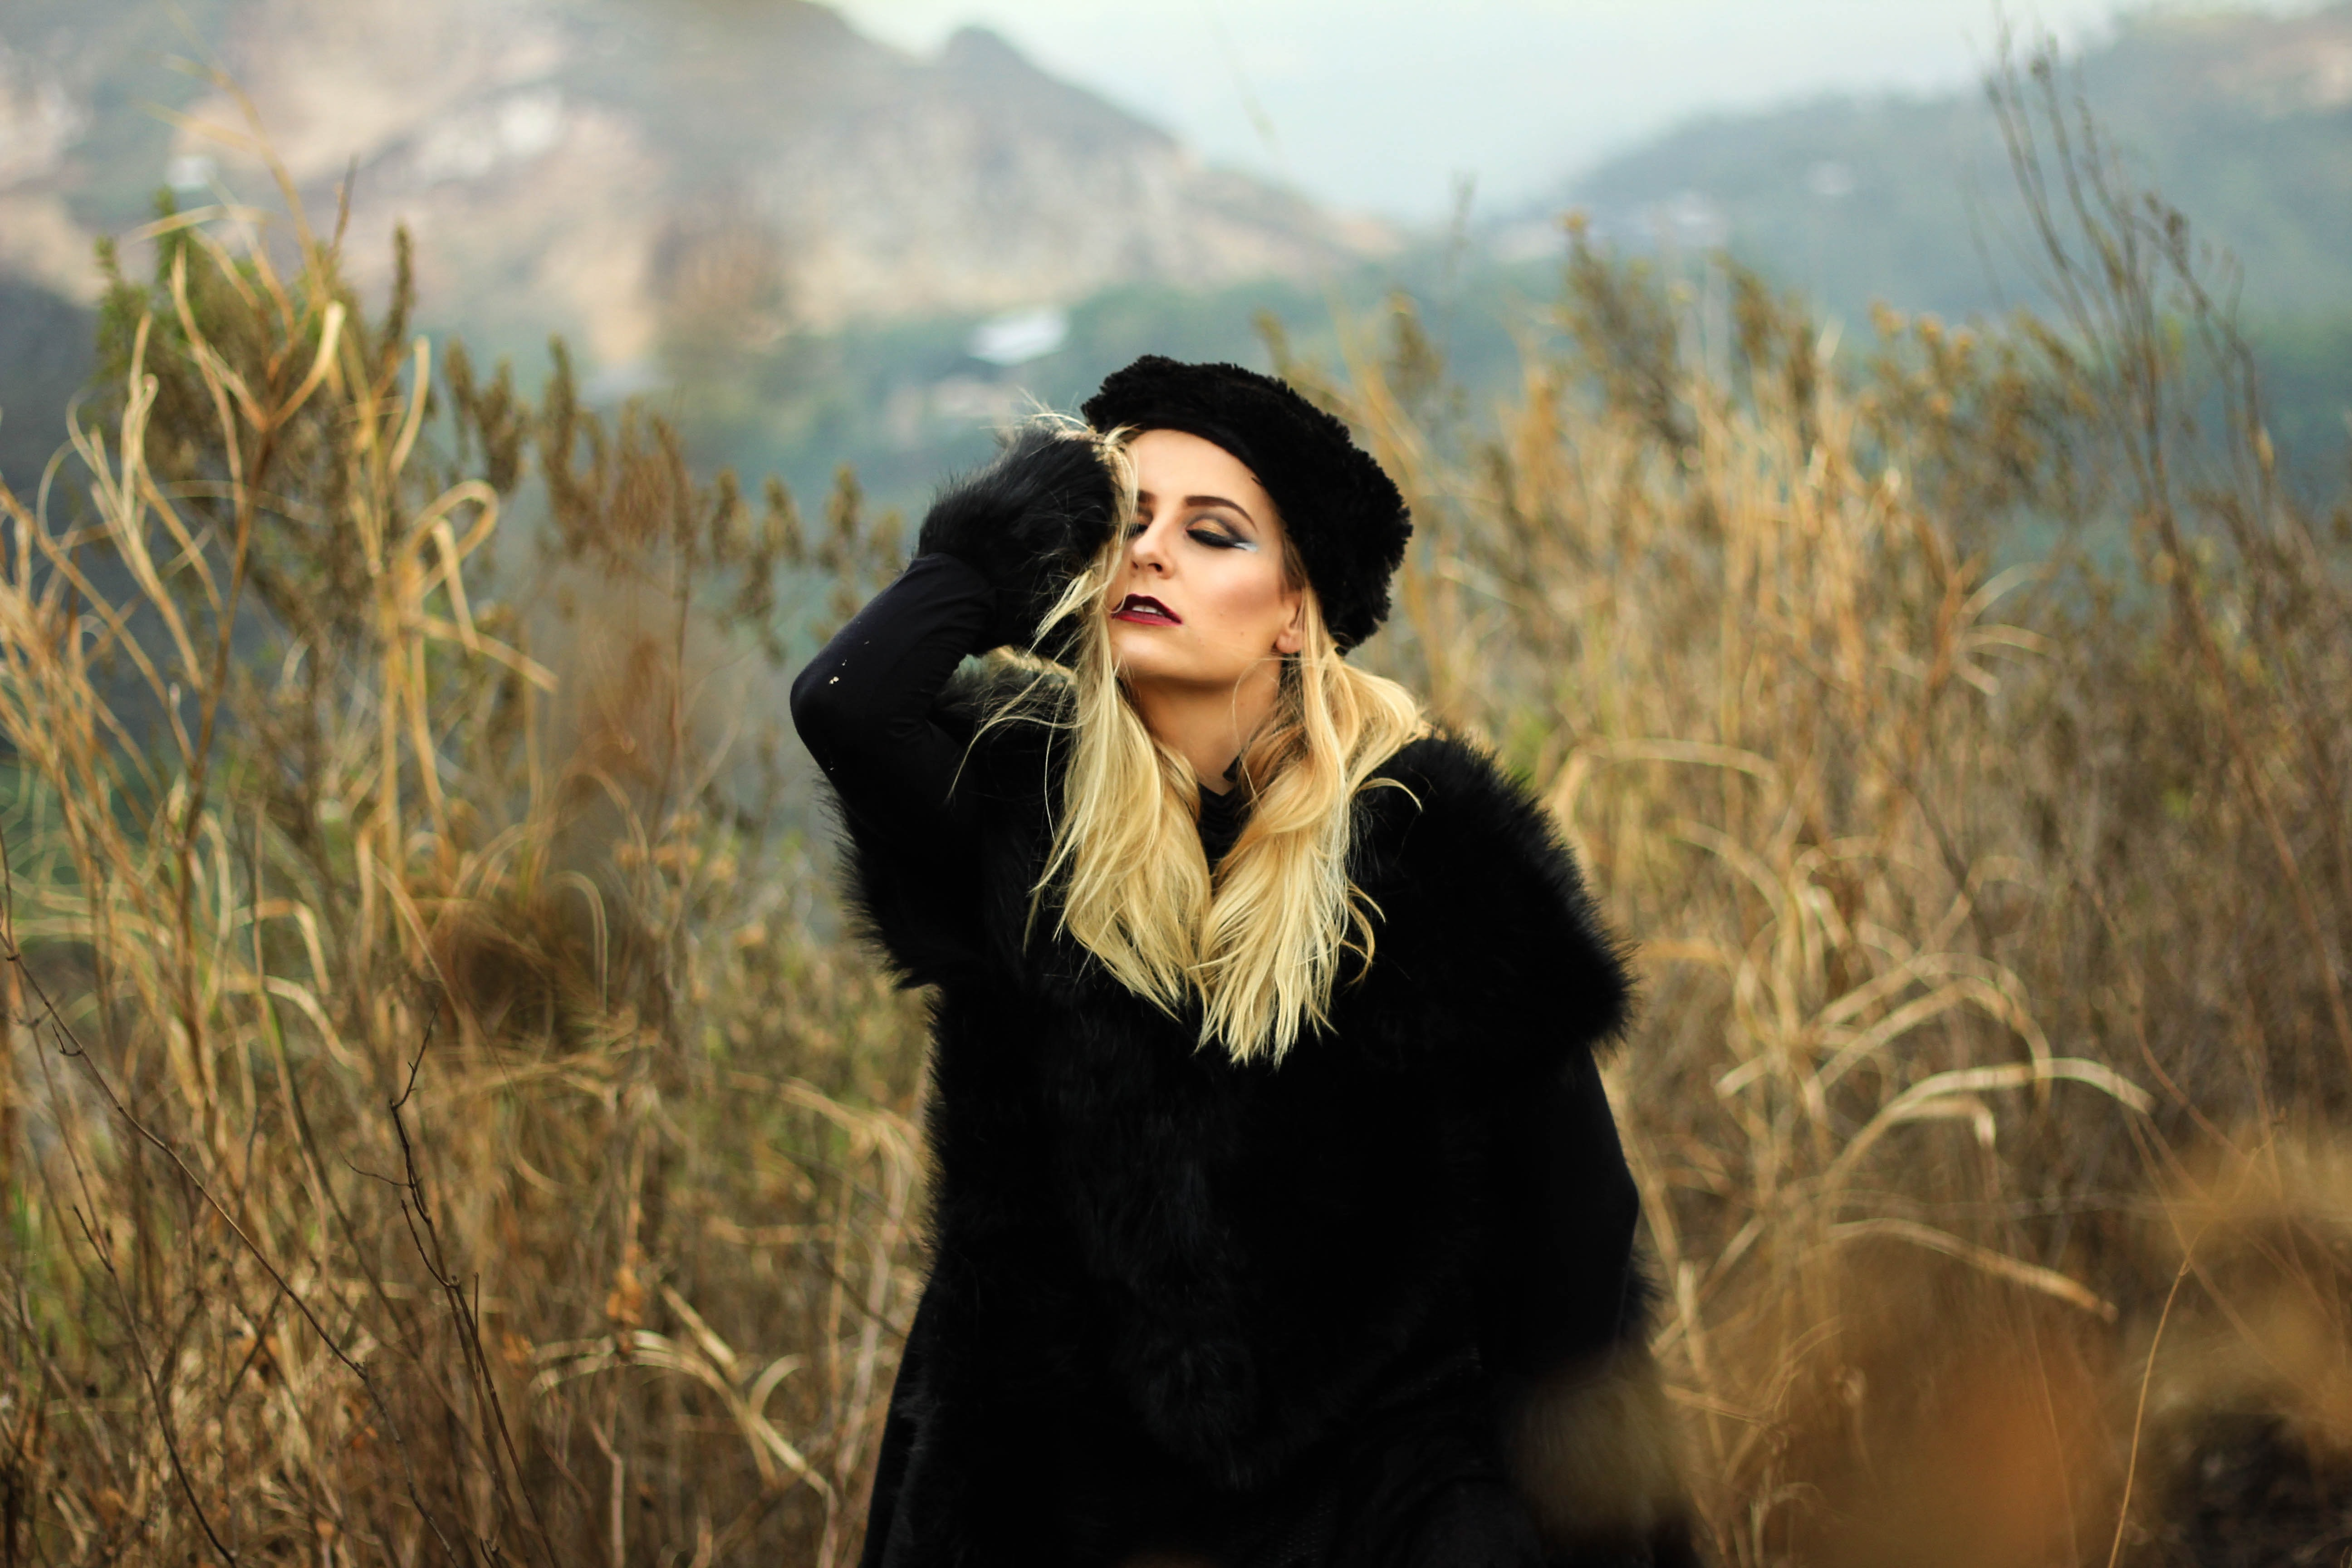 A woman in a black fur coat and hat stands in a field of tall grasses